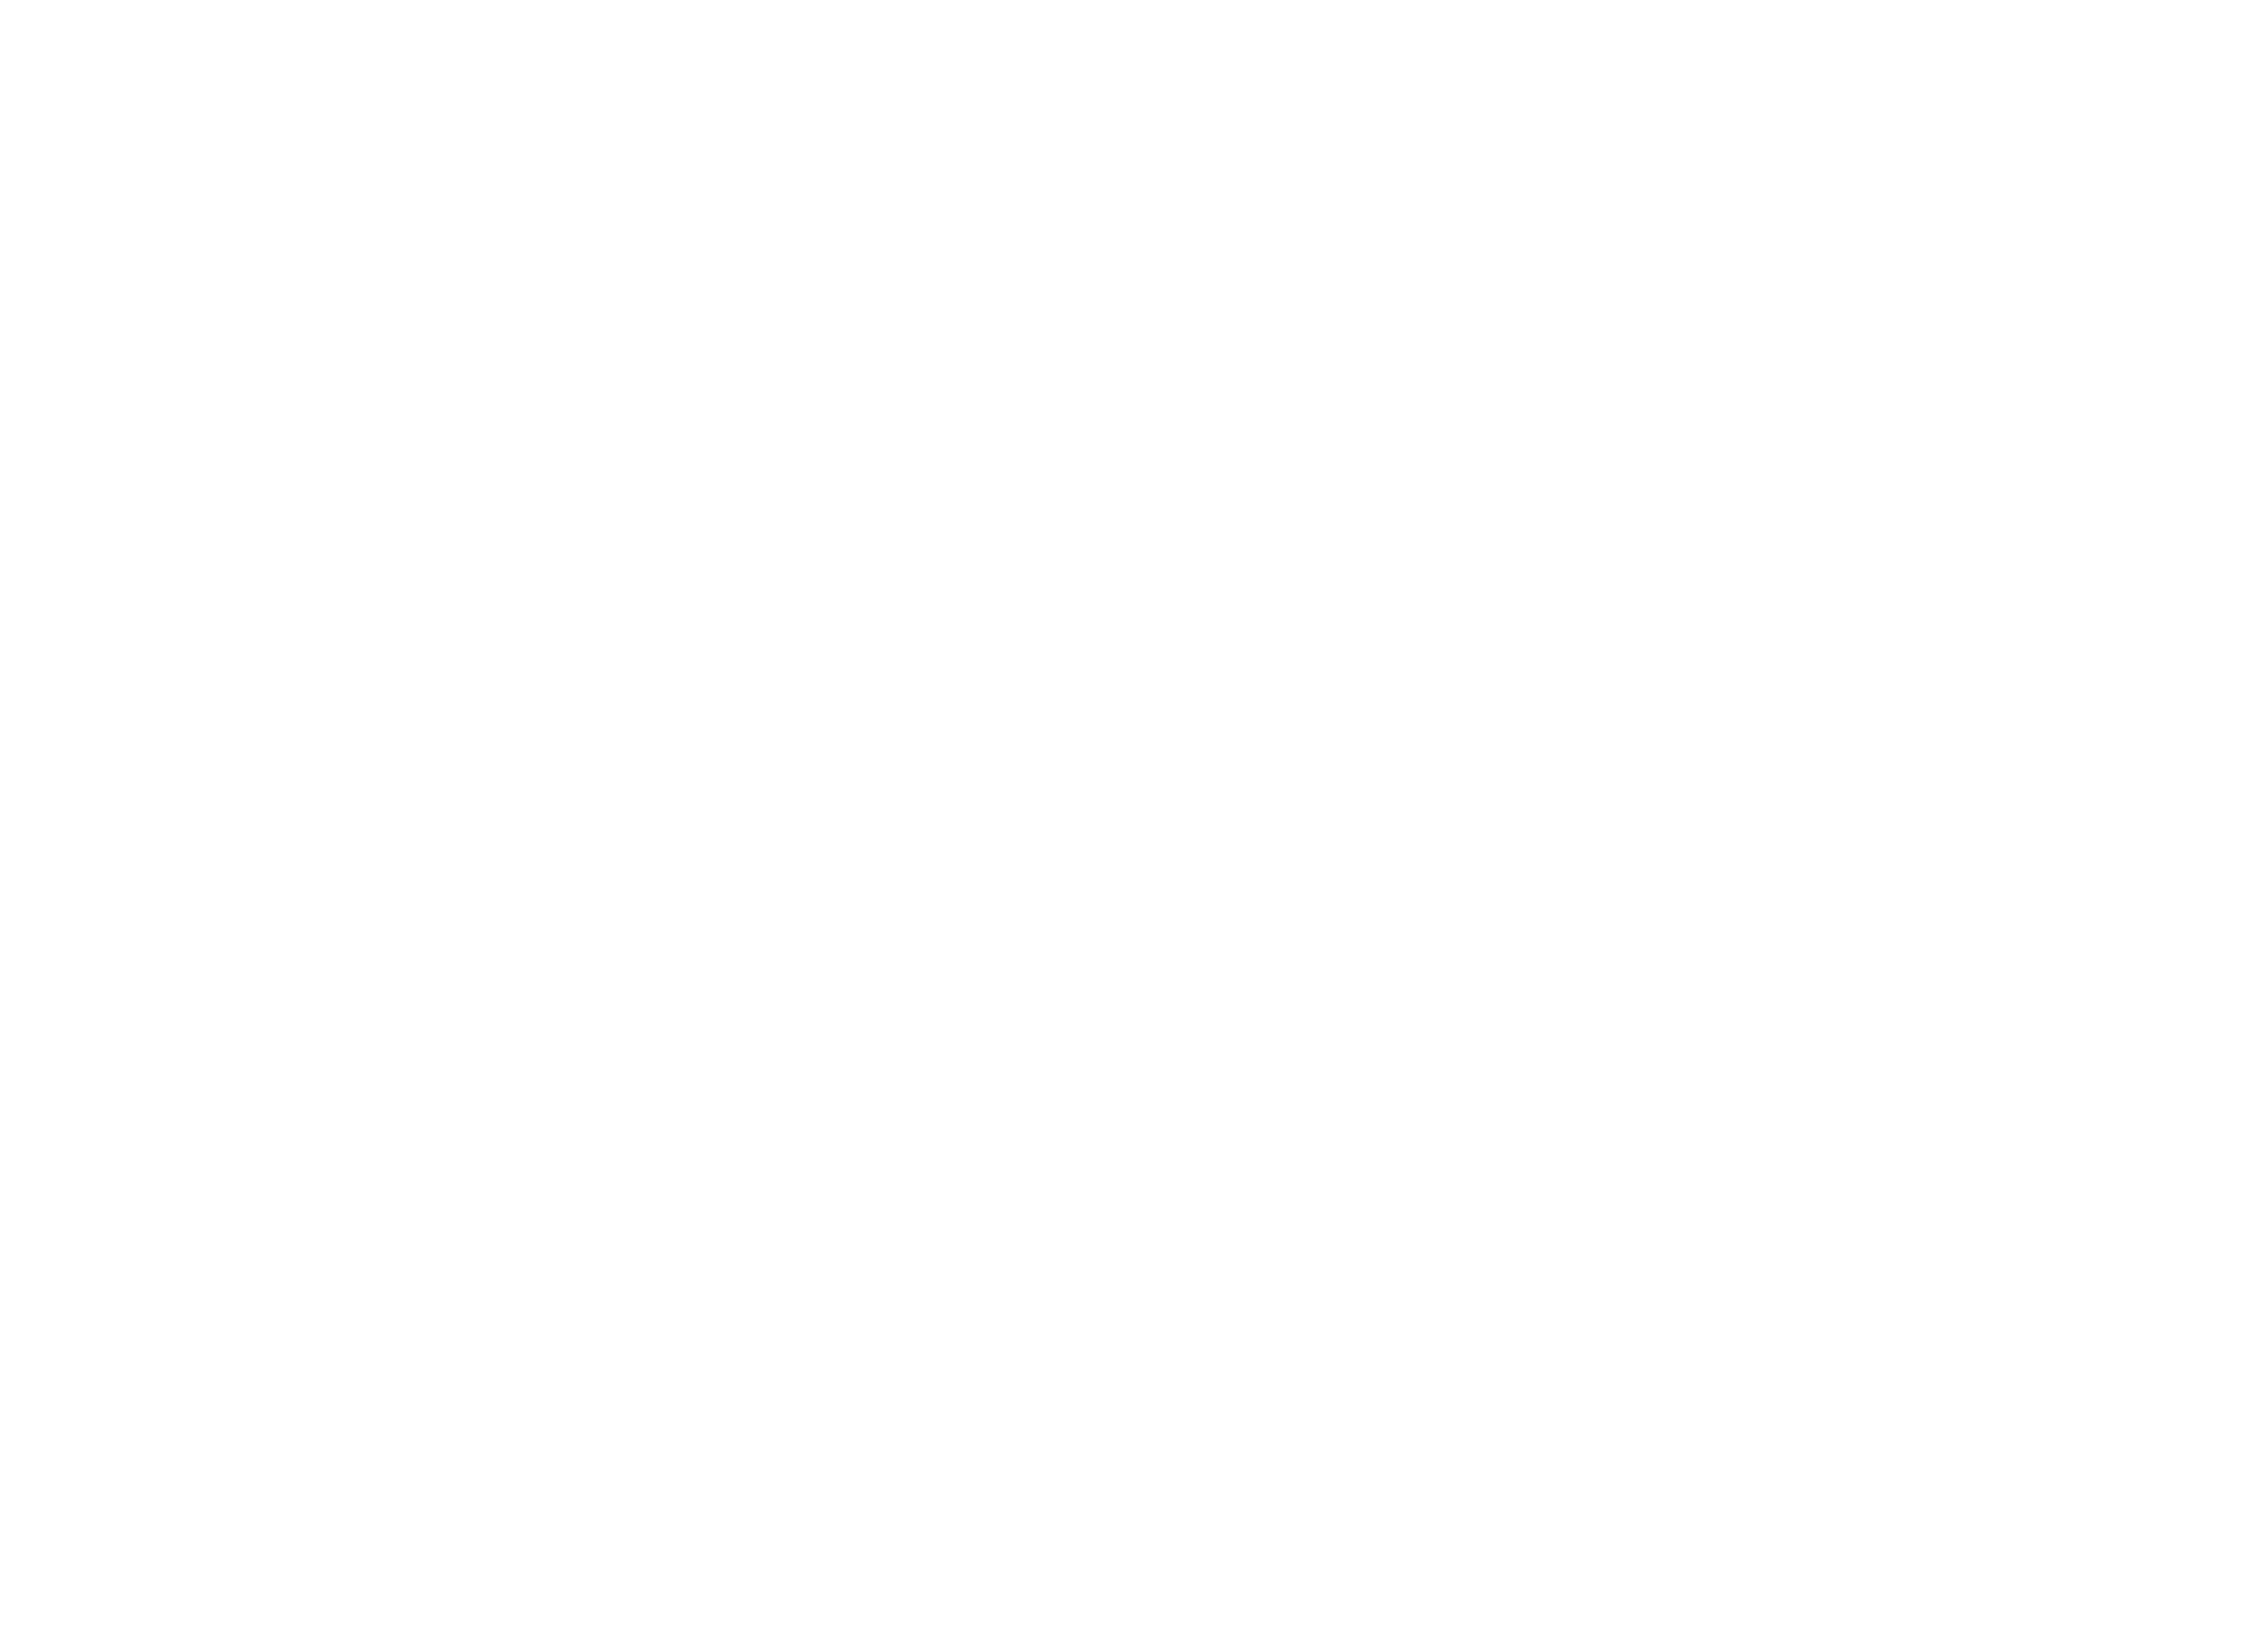 palm beach atlantic university